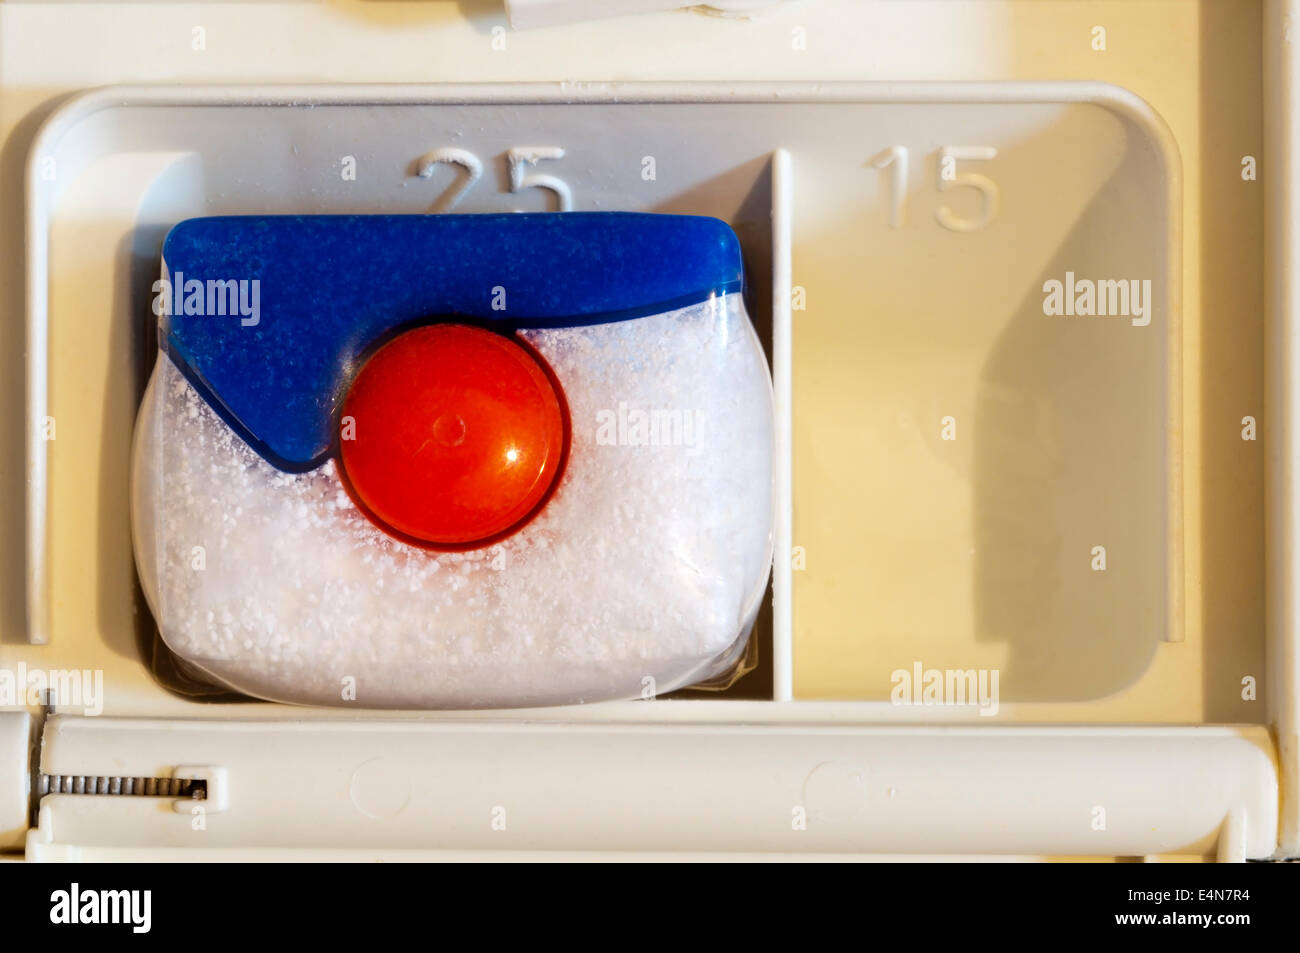 Finish Powerball Quantum Power Gel dishwasher tablet in soap compartment of dishwasher. - Stock Image